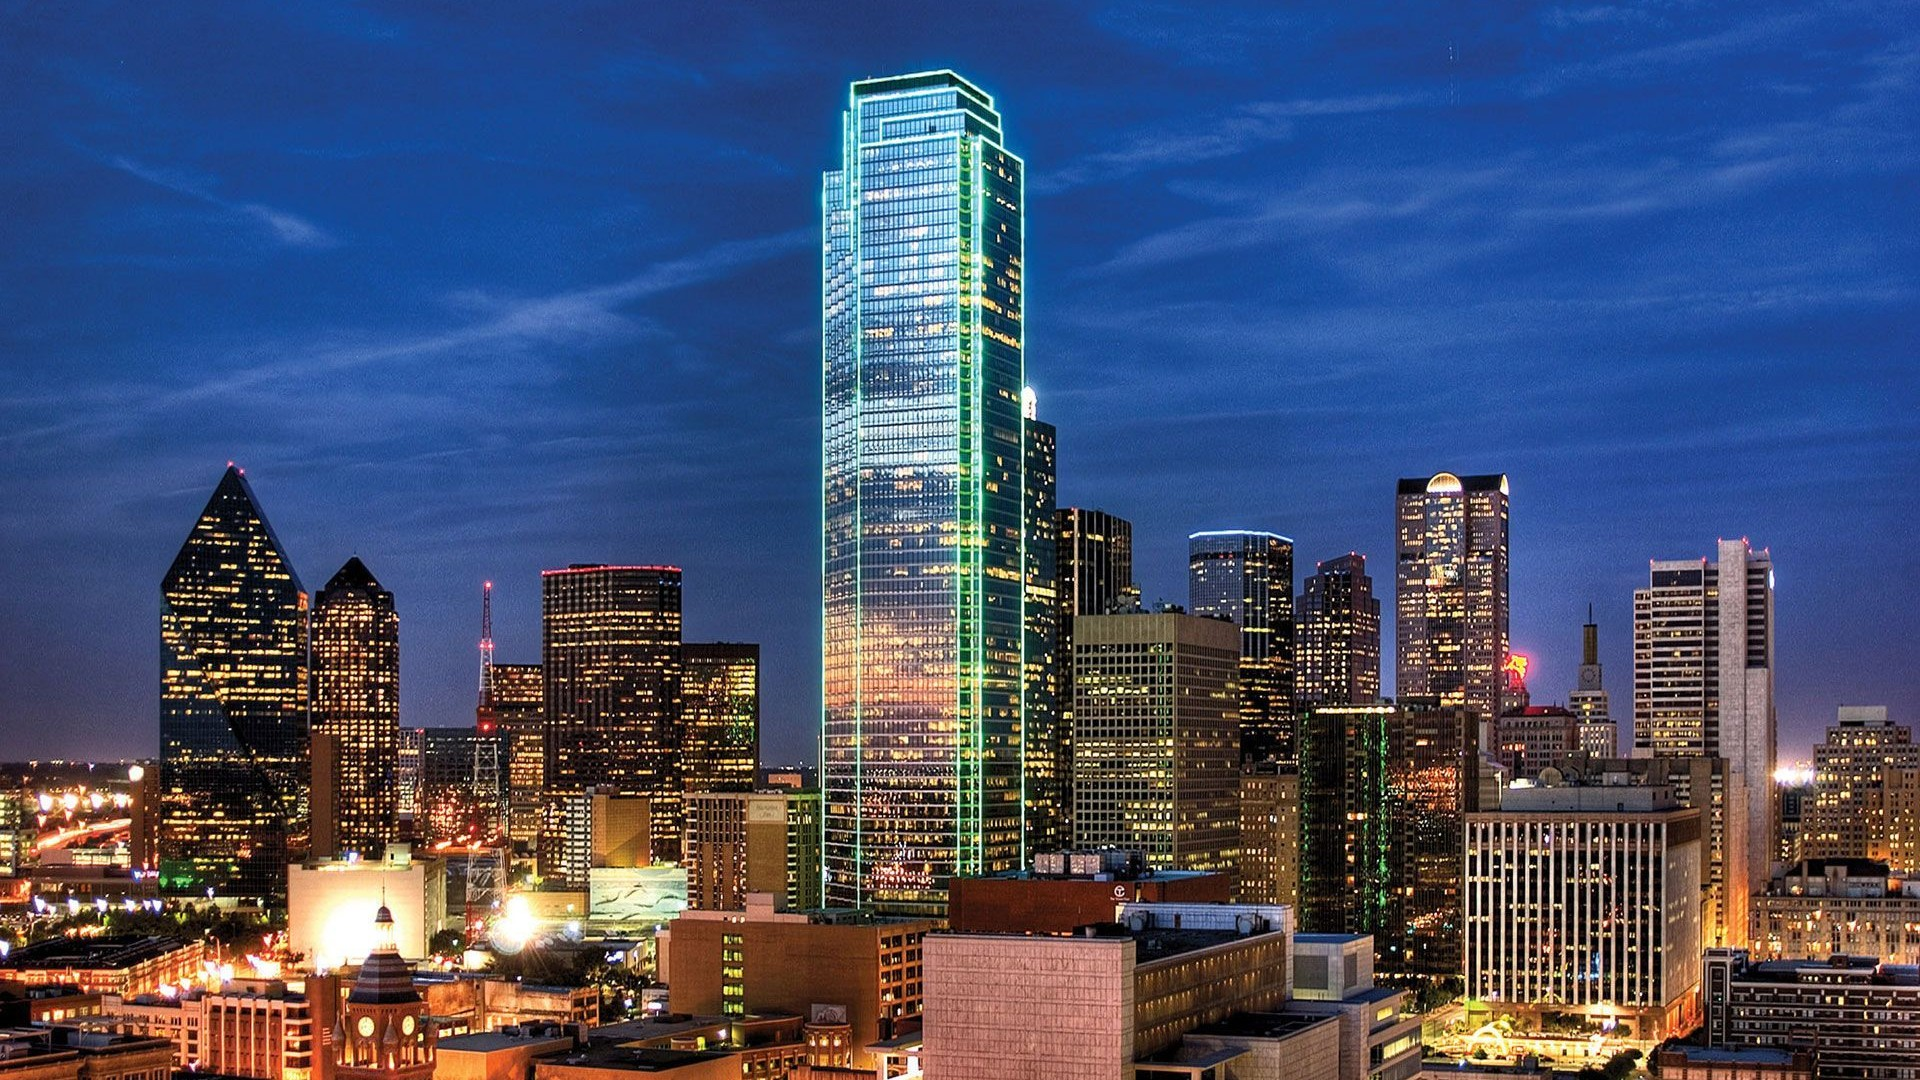 downtown dallas hd wallpapers - photo #6